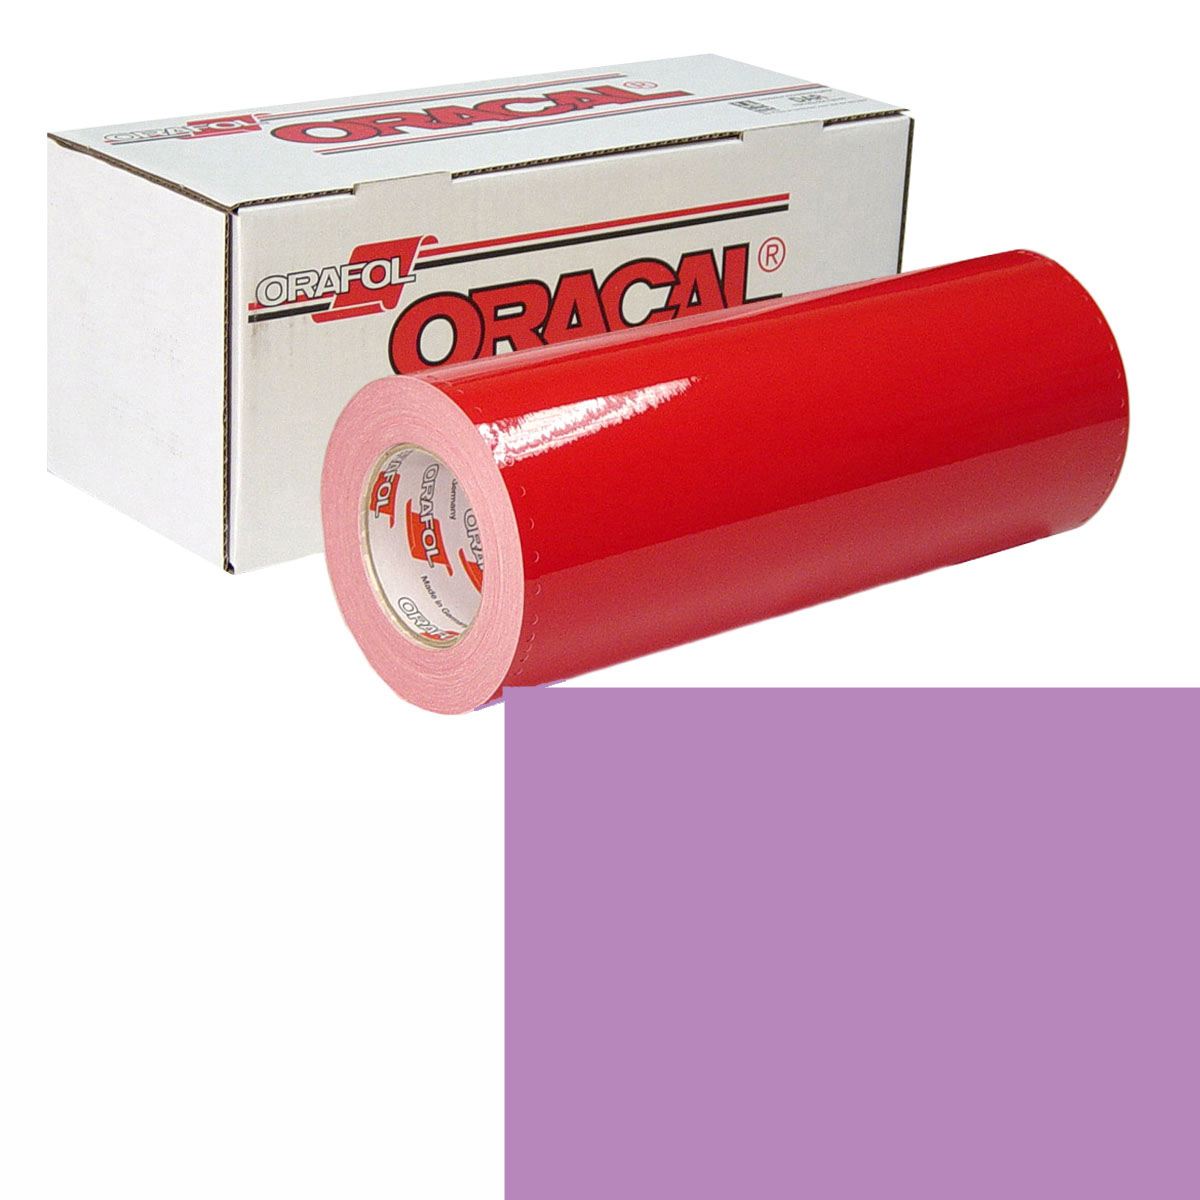 ORACAL 951 Unp 48In X 10Yd 409 Pale Lilac